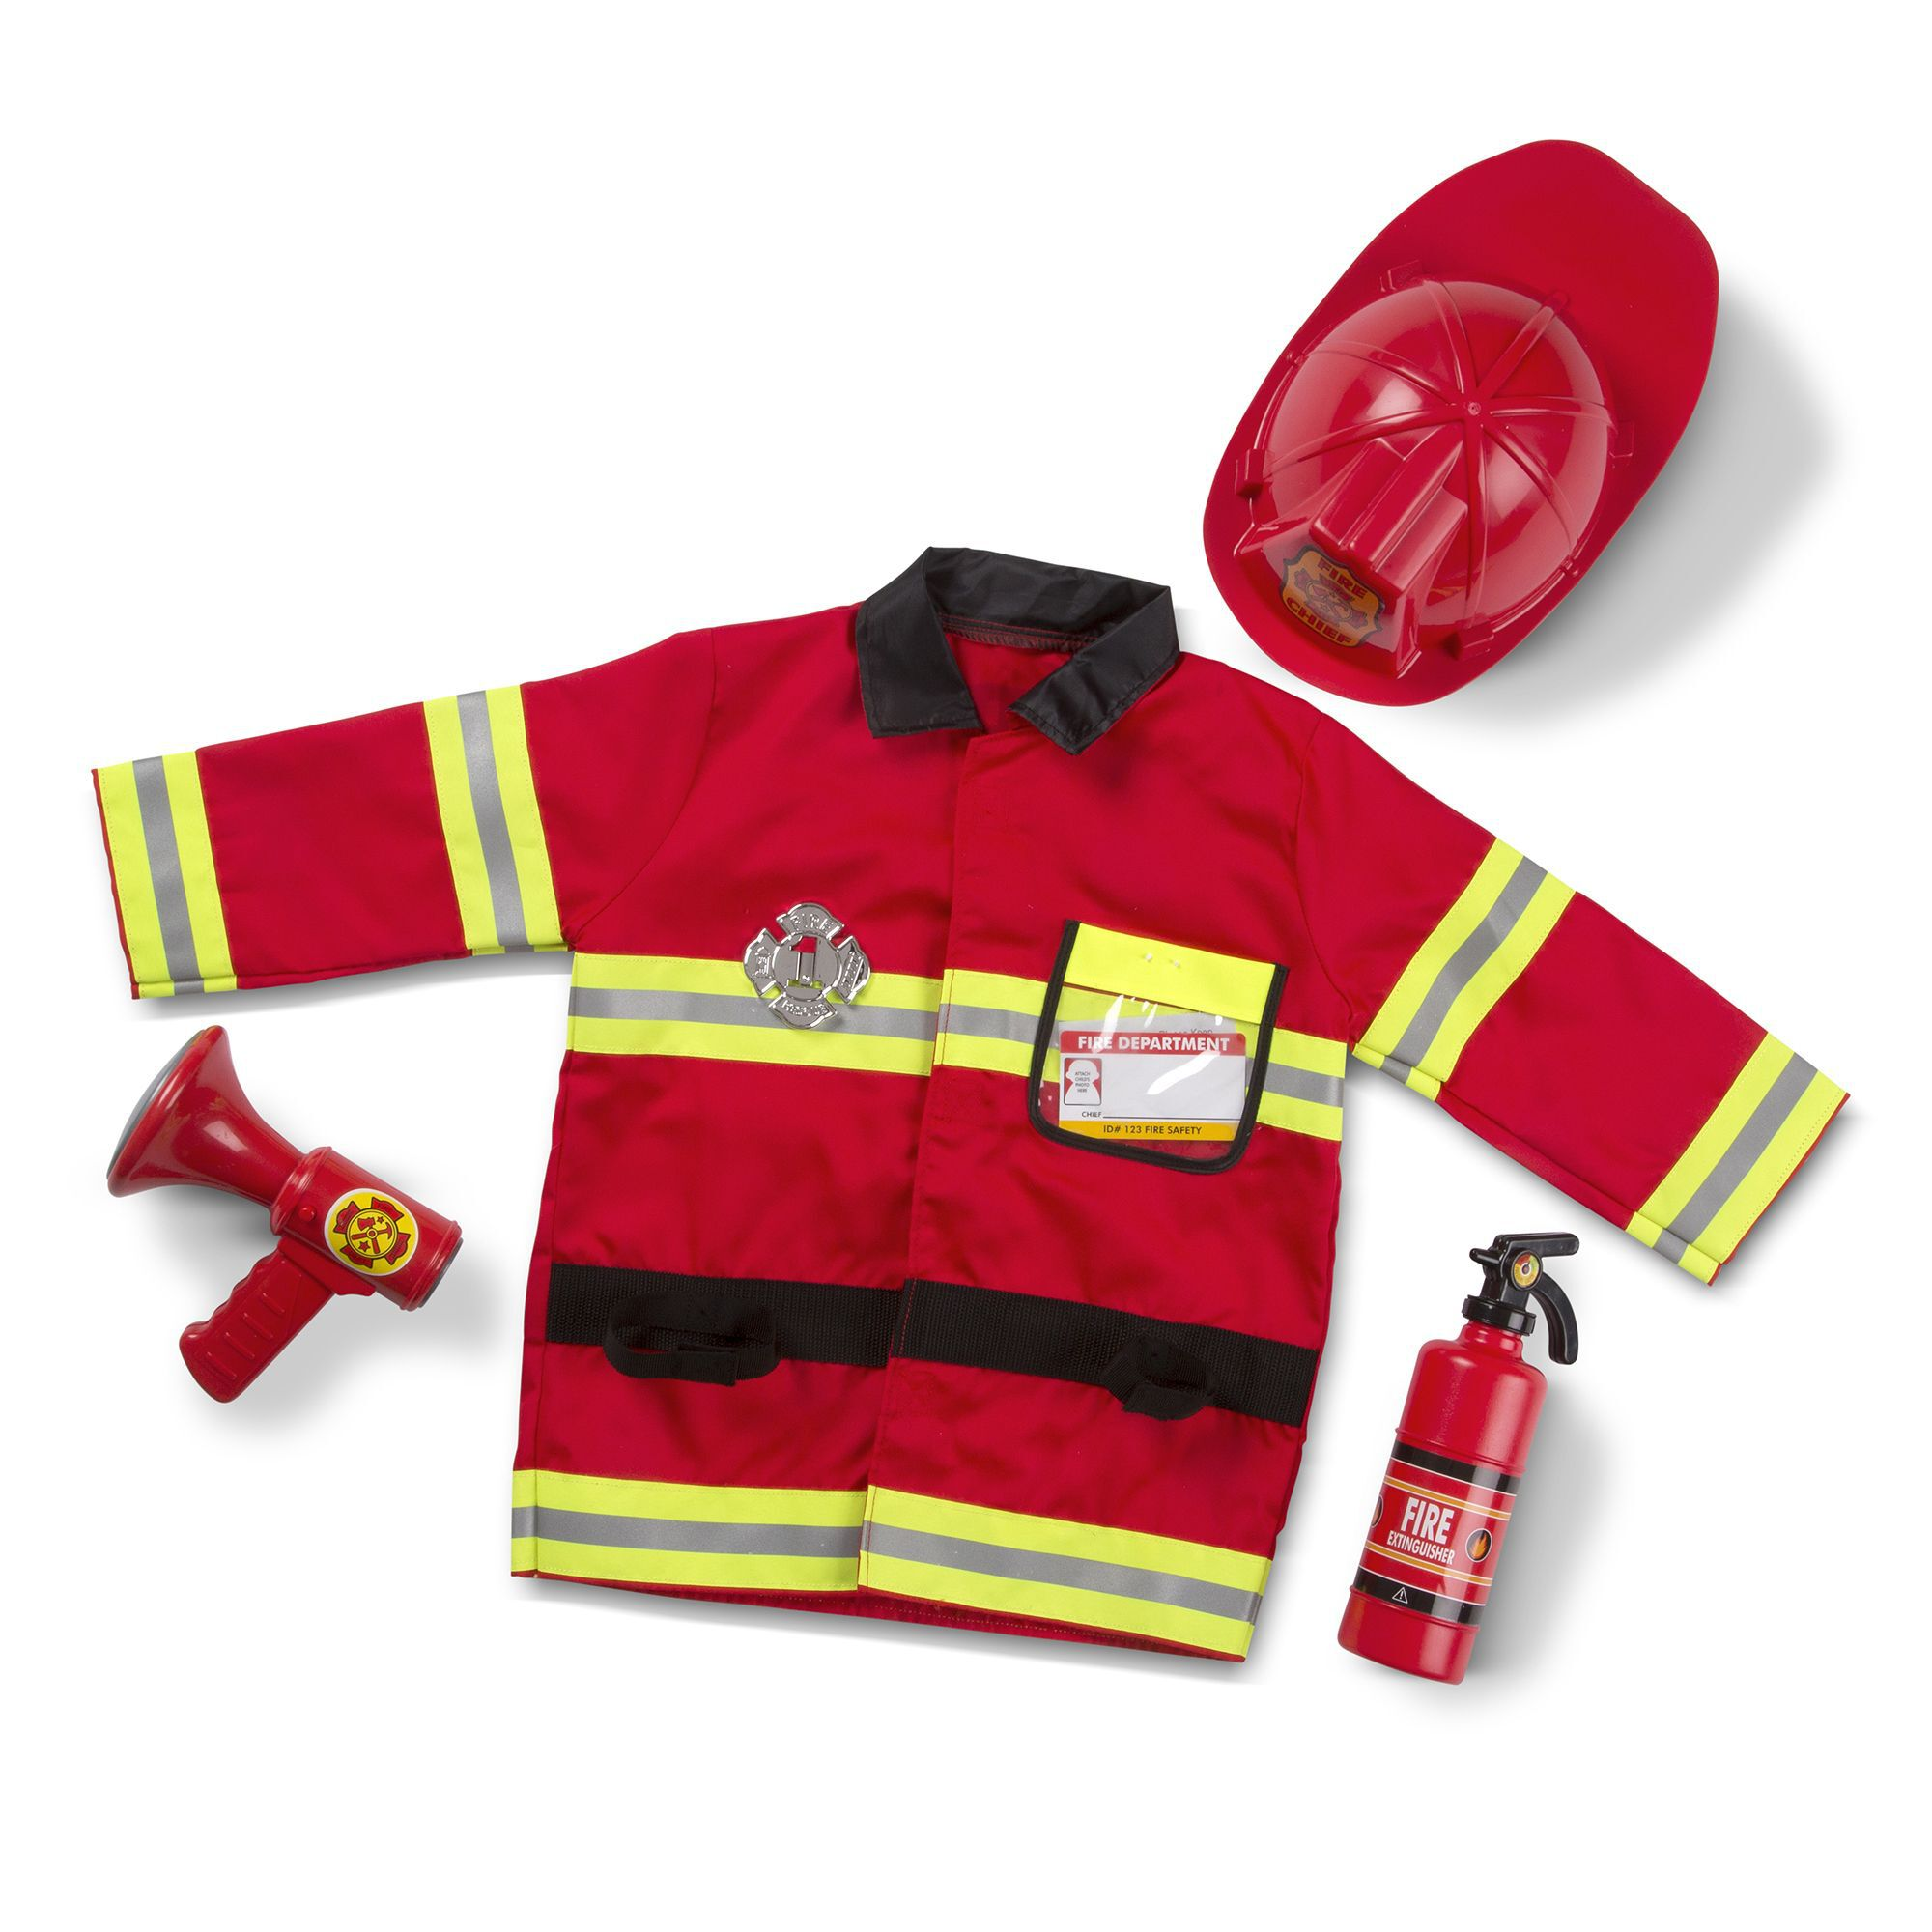 Fire Chief Role Play Costume Set  sc 1 st  Melissa u0026 Doug & Fire Chief Role Play Costume Set | Melissa u0026 Doug